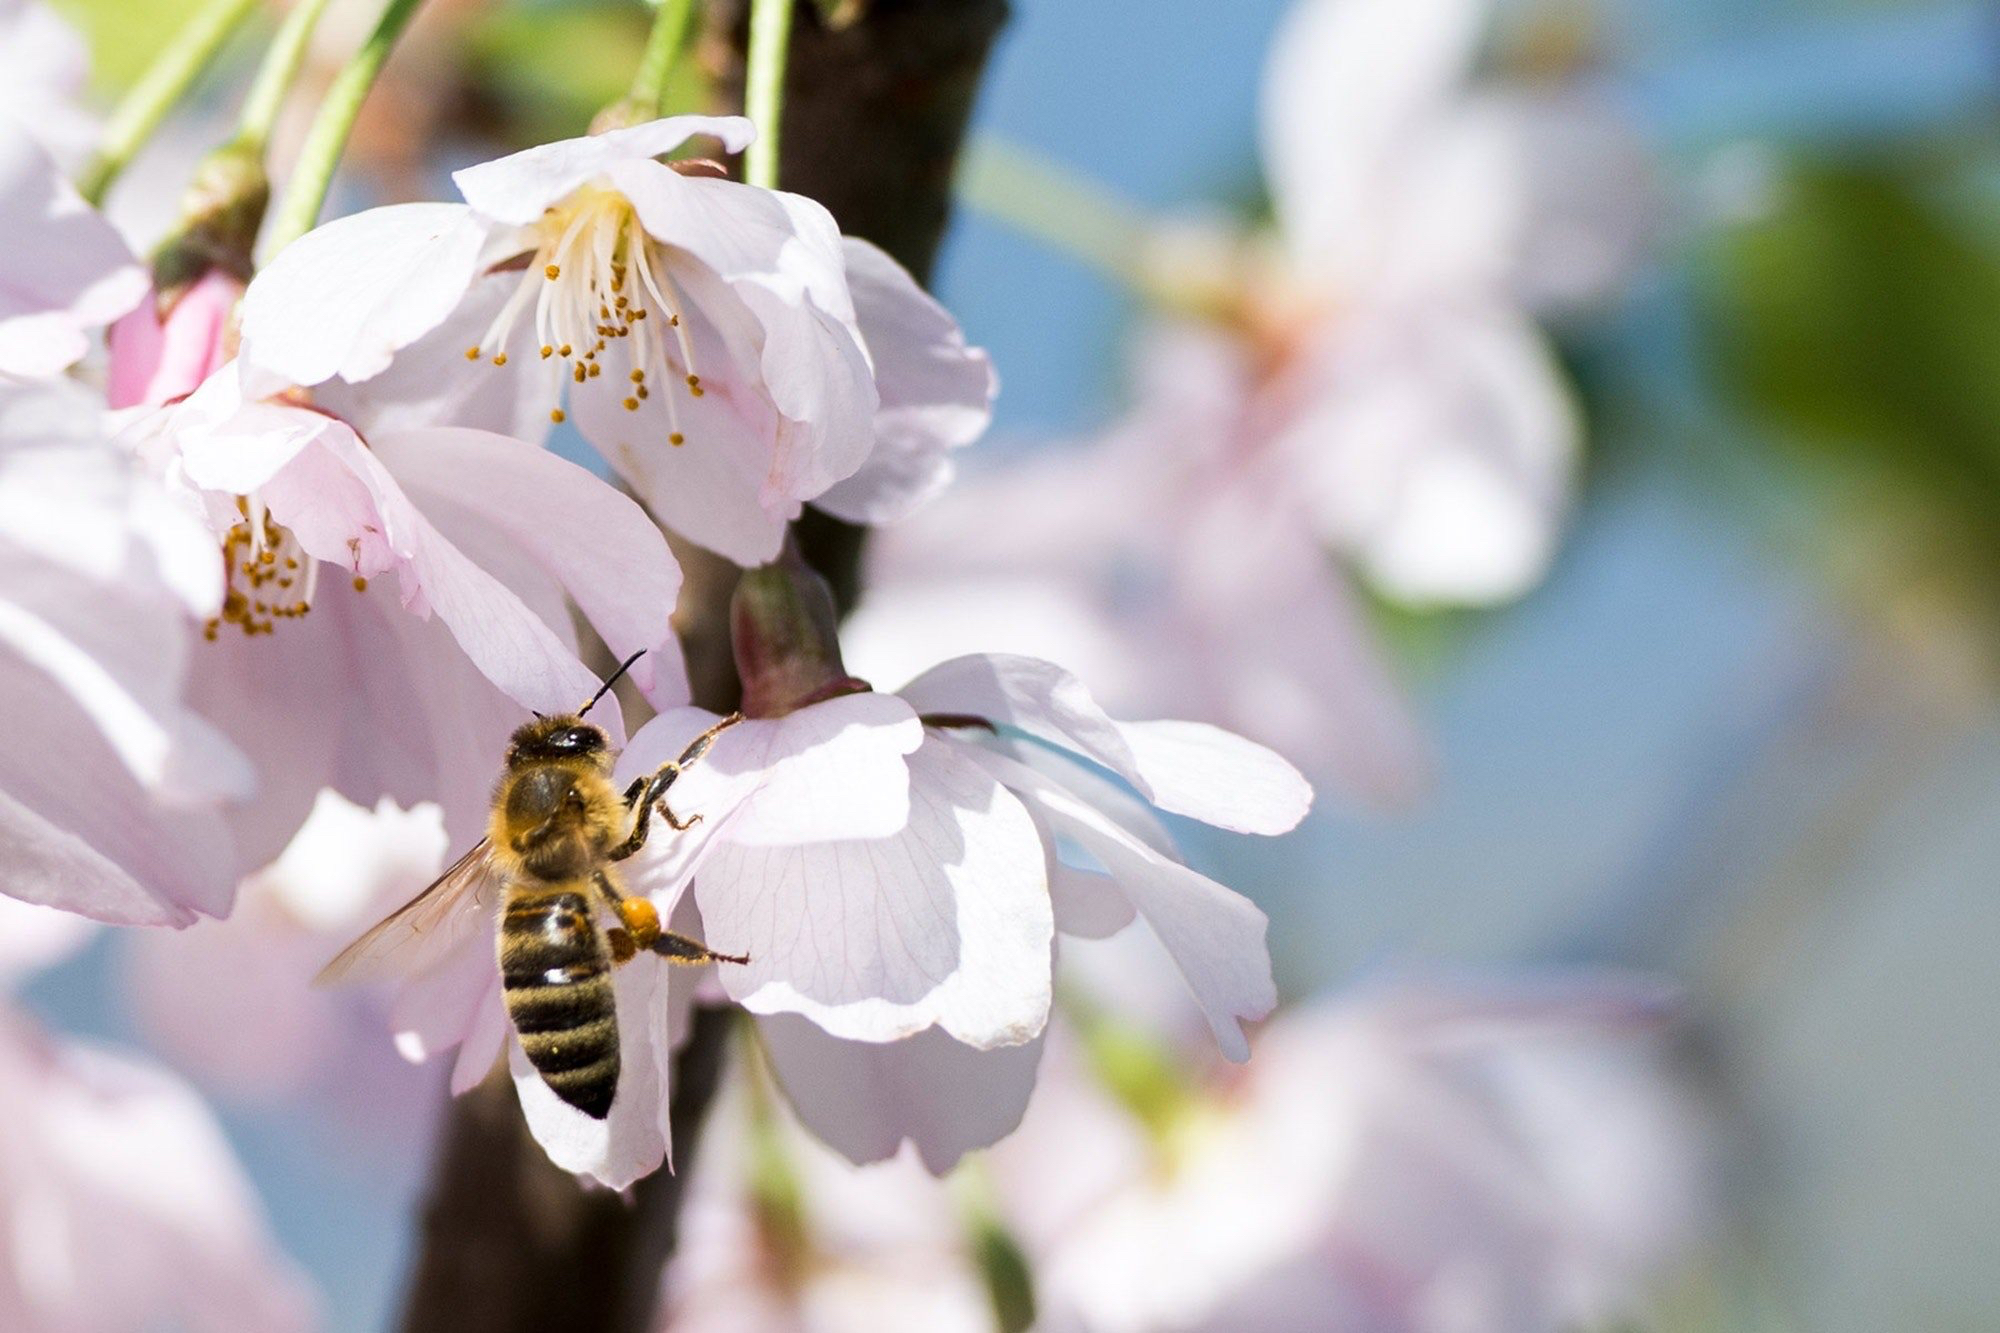 bee-bloom-blossom-266648